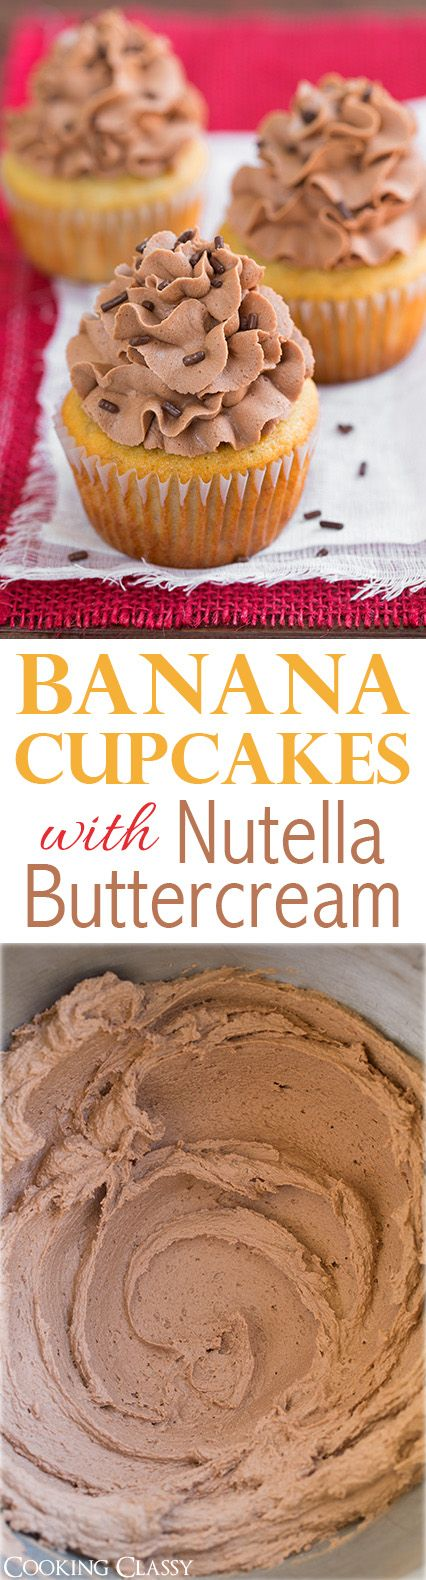 Banana Cupcakes with Nutella Buttercream Frosting - such a delicious combination! A neighbor told me these were the best cupcakes they've ever had and asked me to make them again for them!